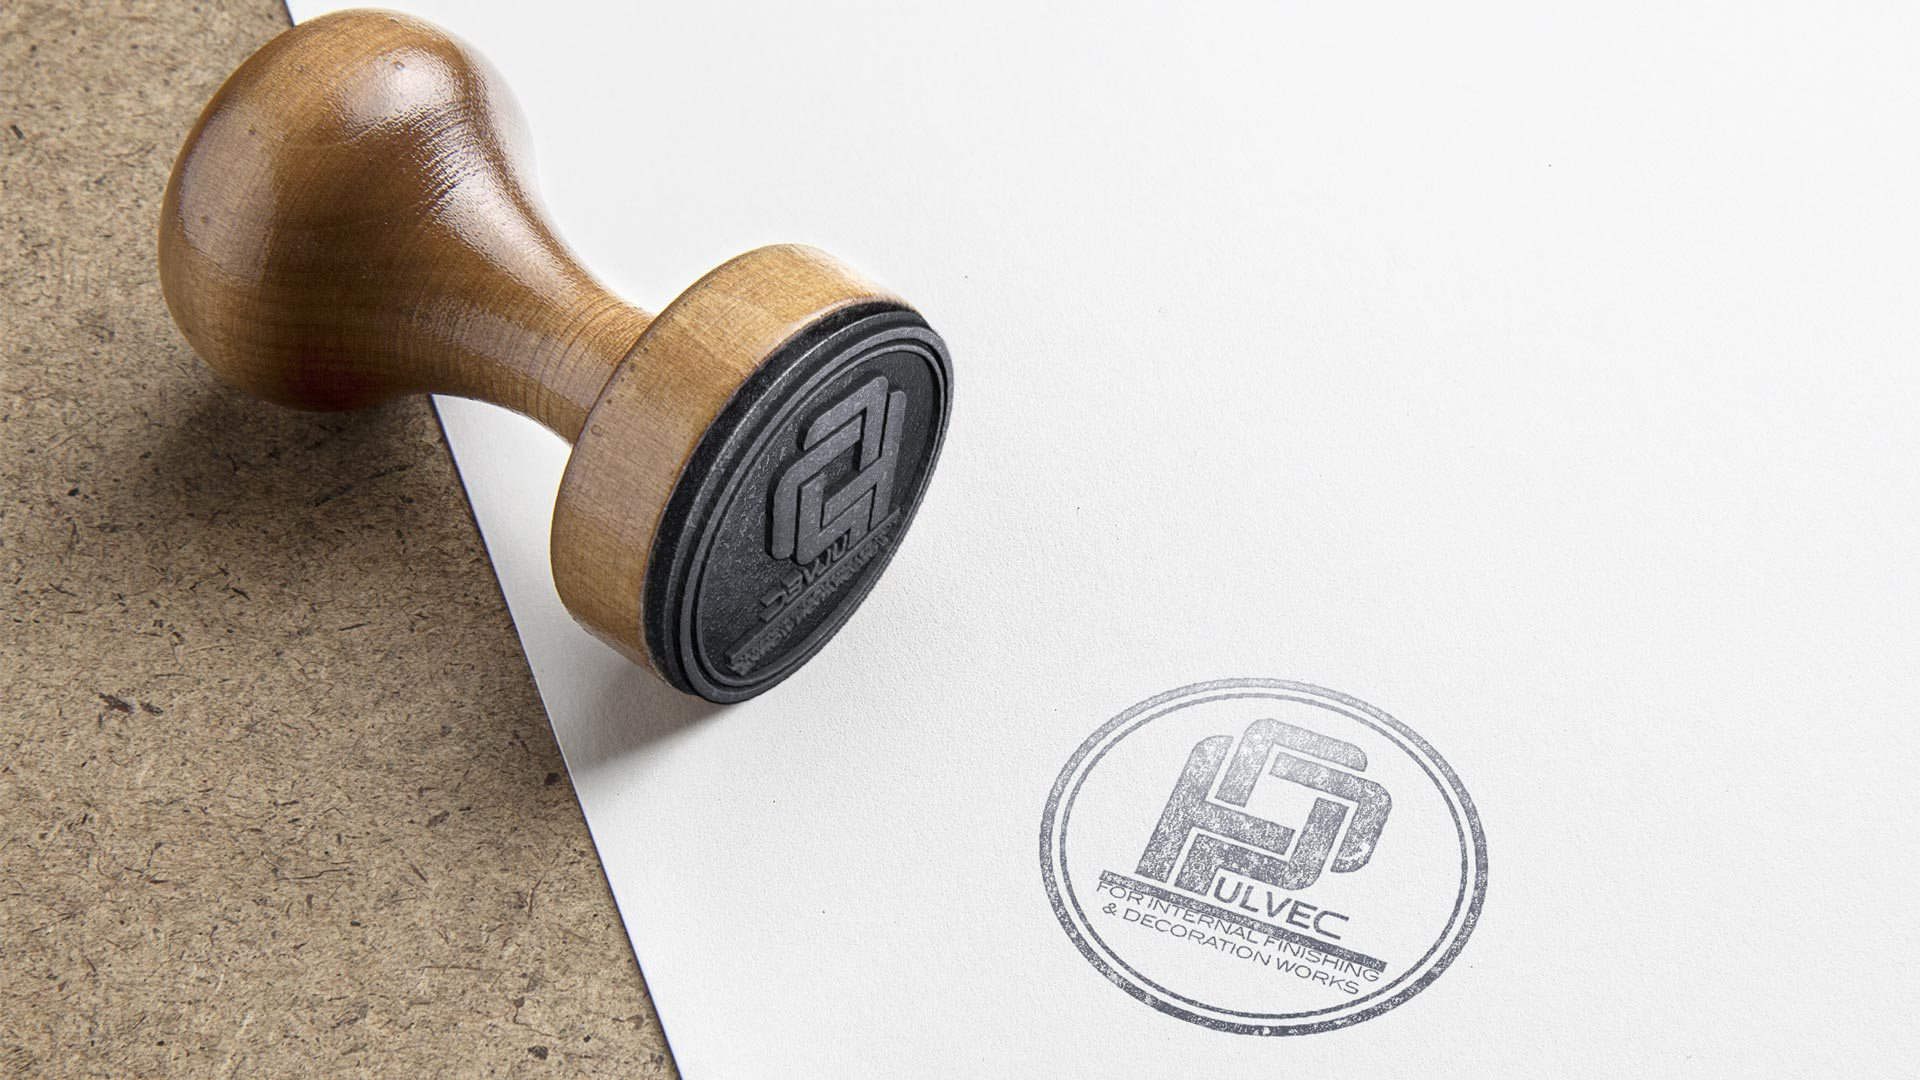 pulvec-contracting-rubber-stamp